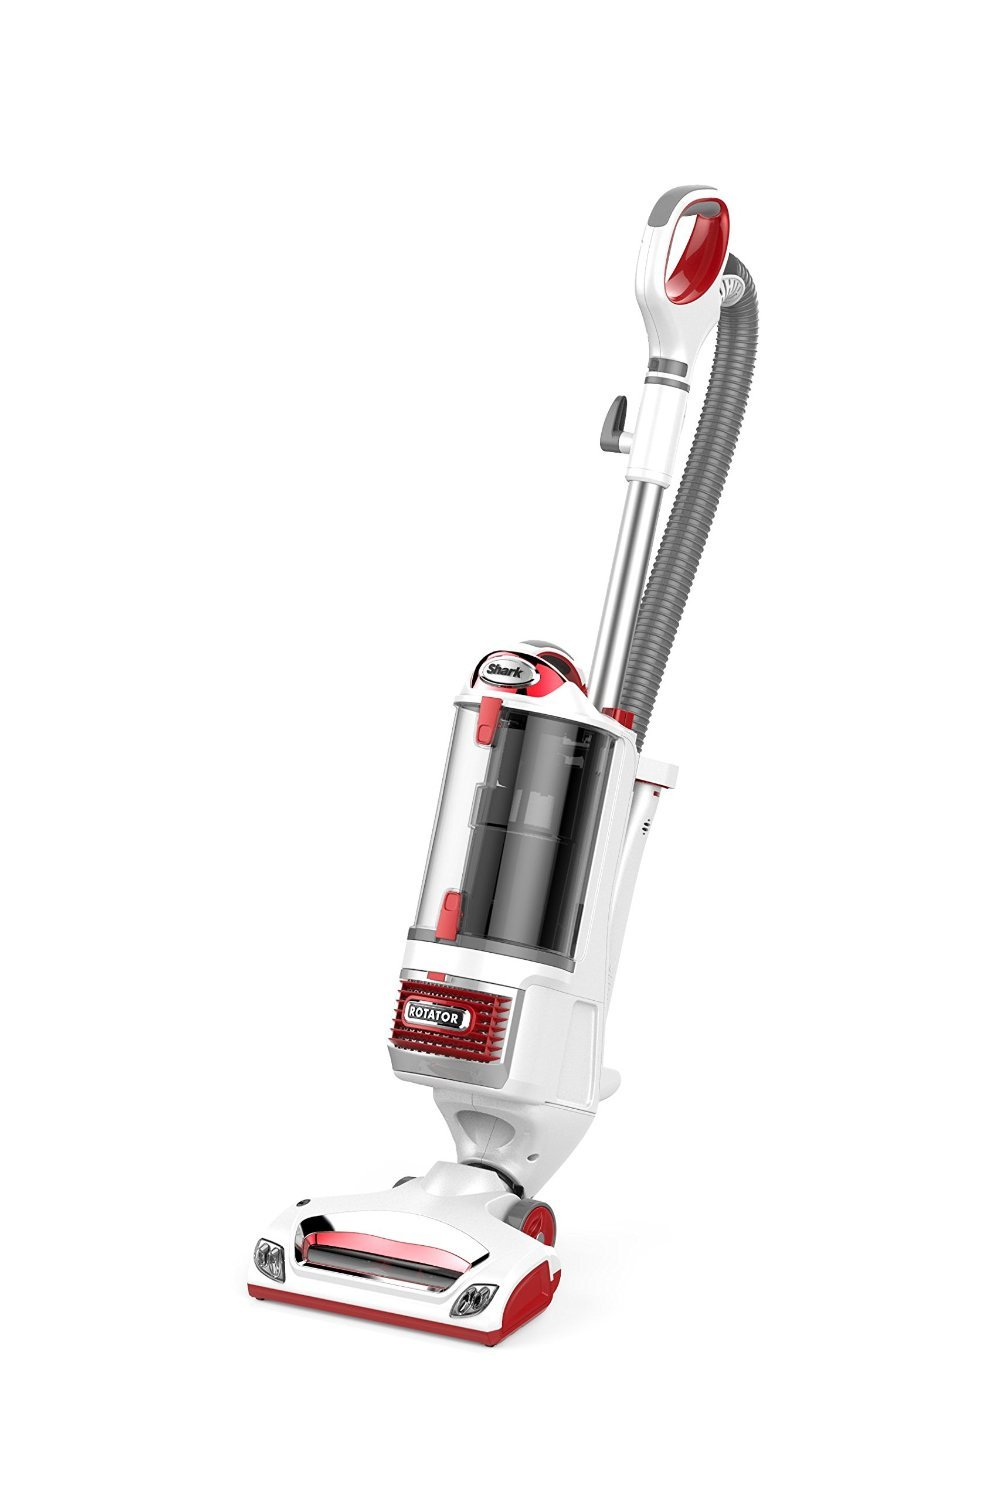 Shark Rotator Professional Lift-Away Upright Vacuum, NV 501